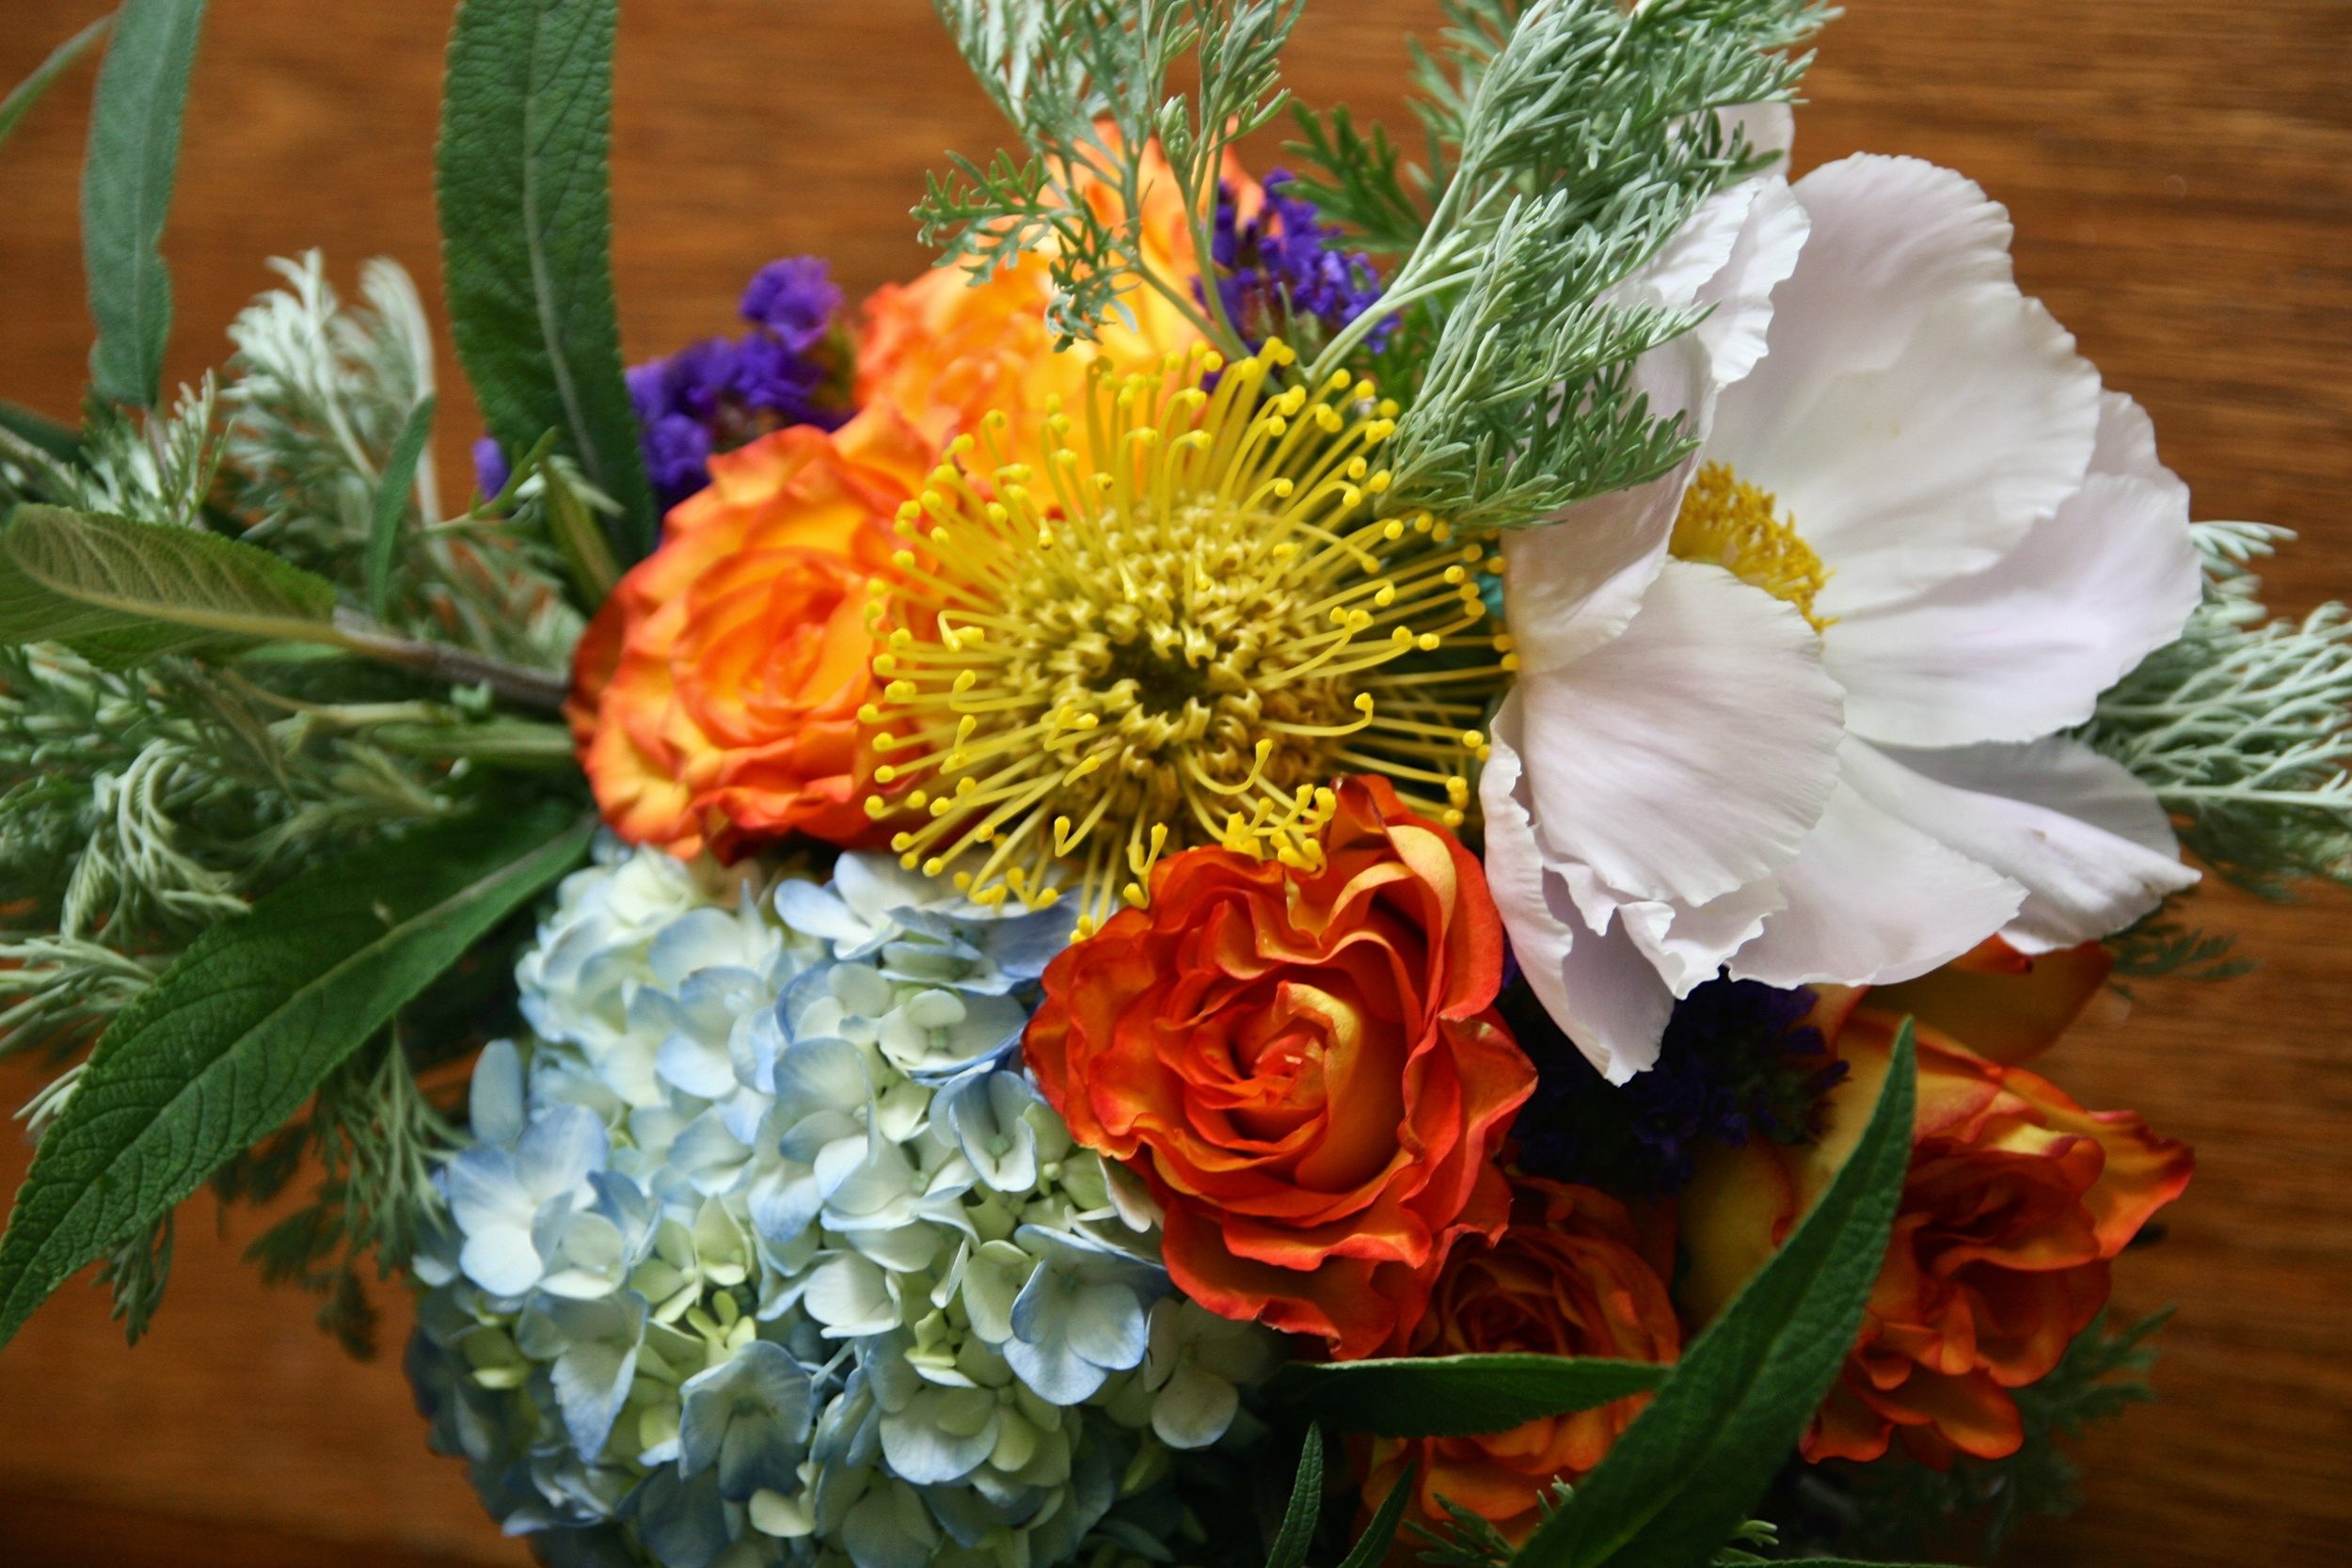 Giving these flowers will make you giddy.